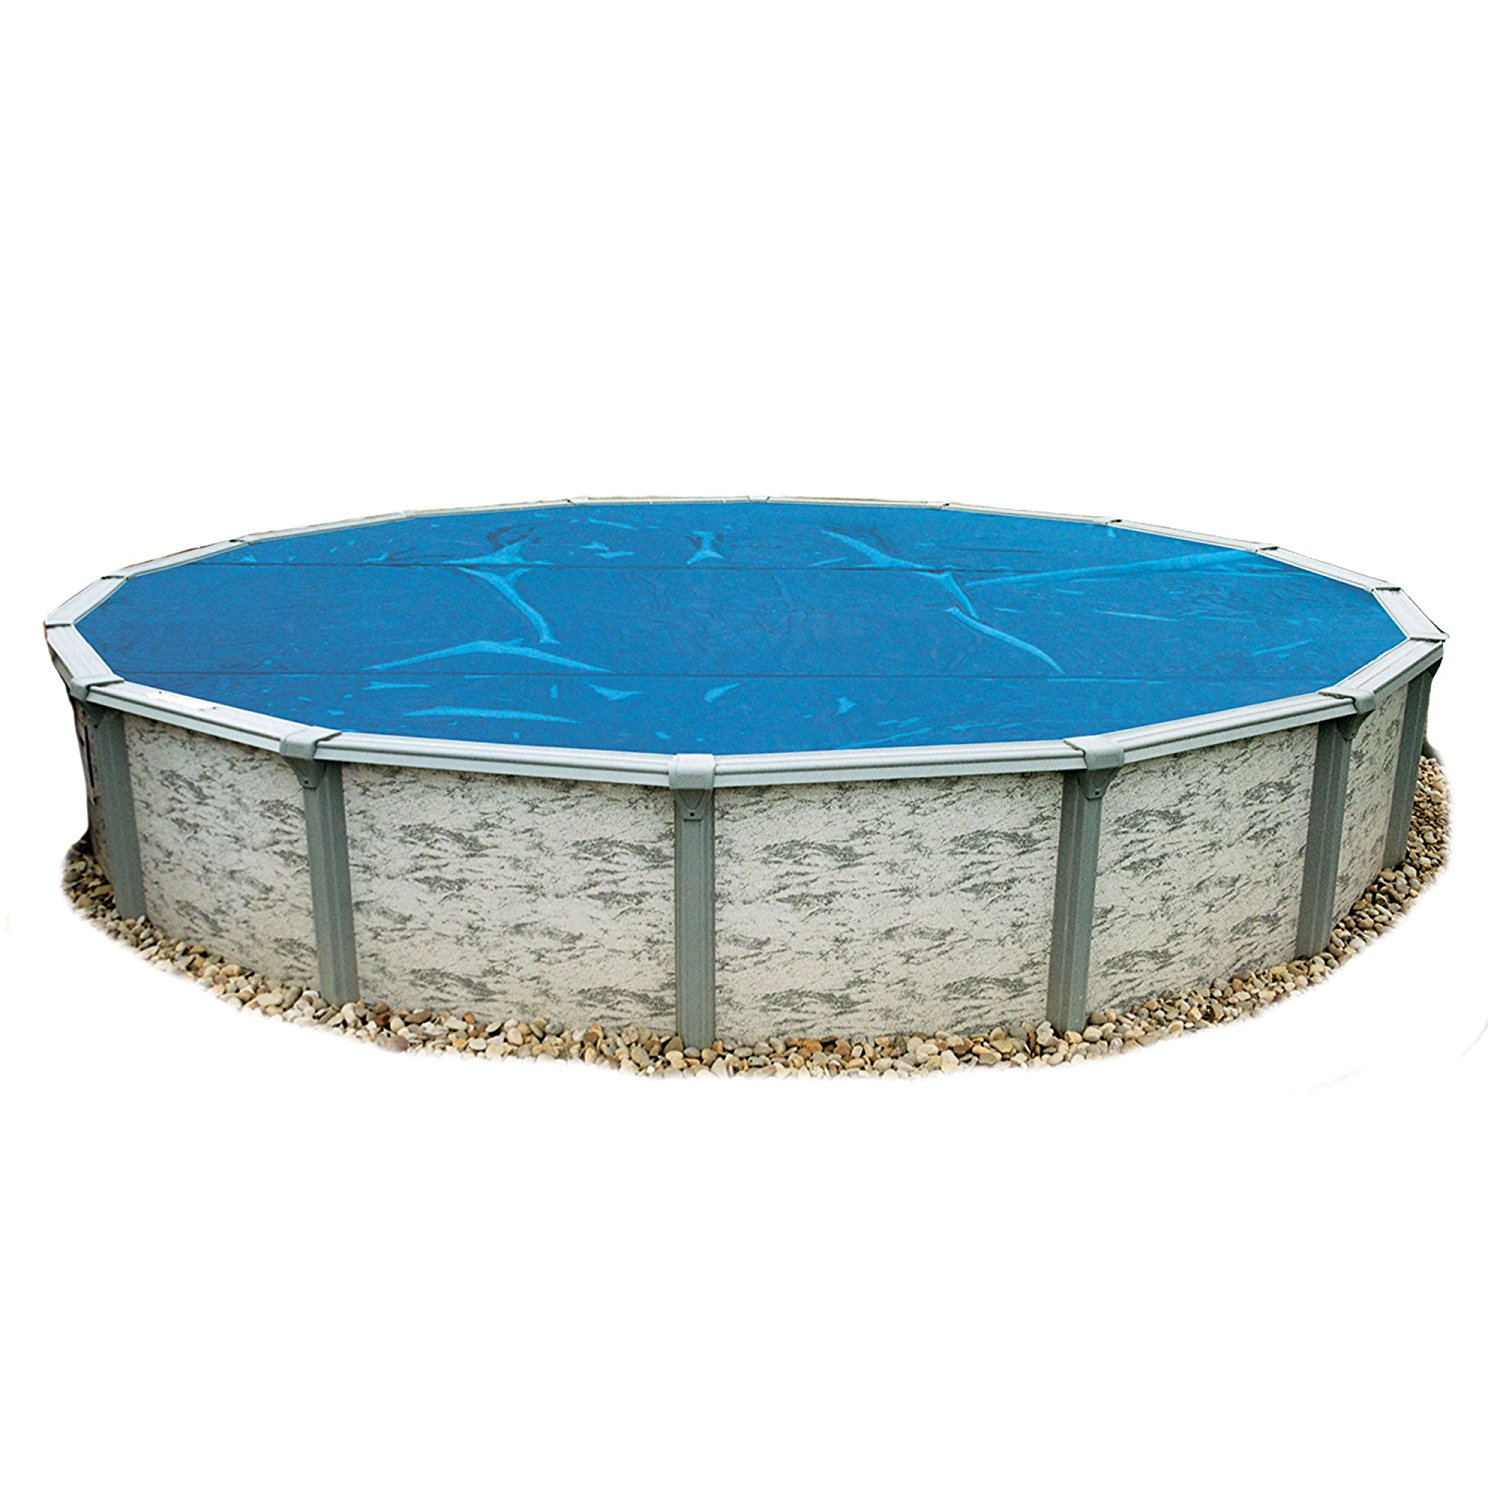 Blue Wave Round Above-Ground Pool Cover